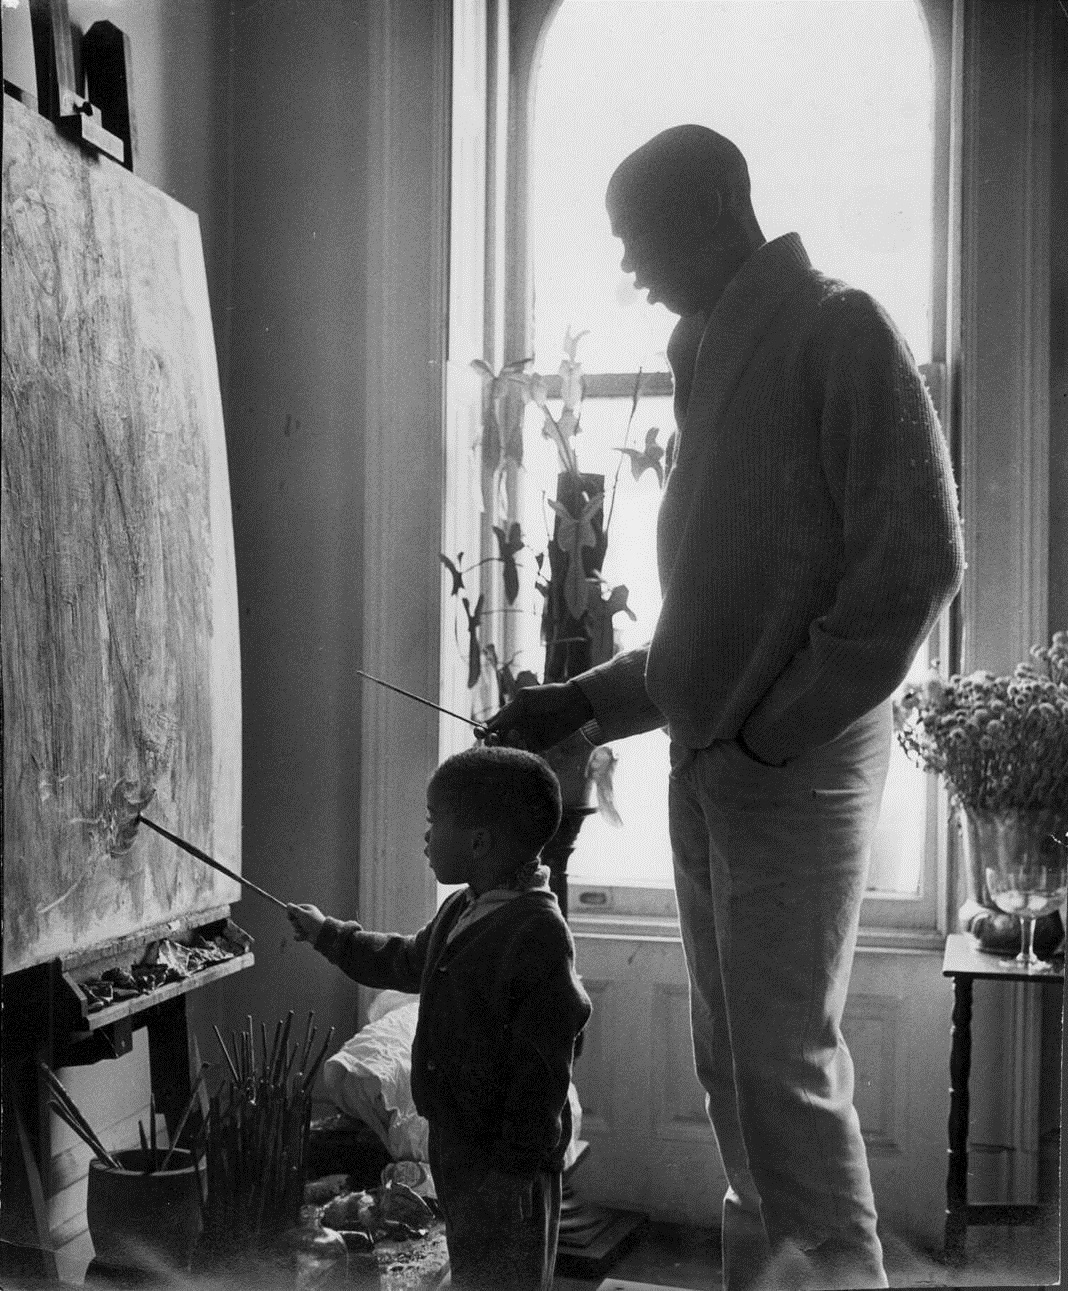 Dancer, choreographer, director, actor and painter Geoffrey Holder died Sunday. His son, Leo, writes about the remarkable last night he spent with his father.